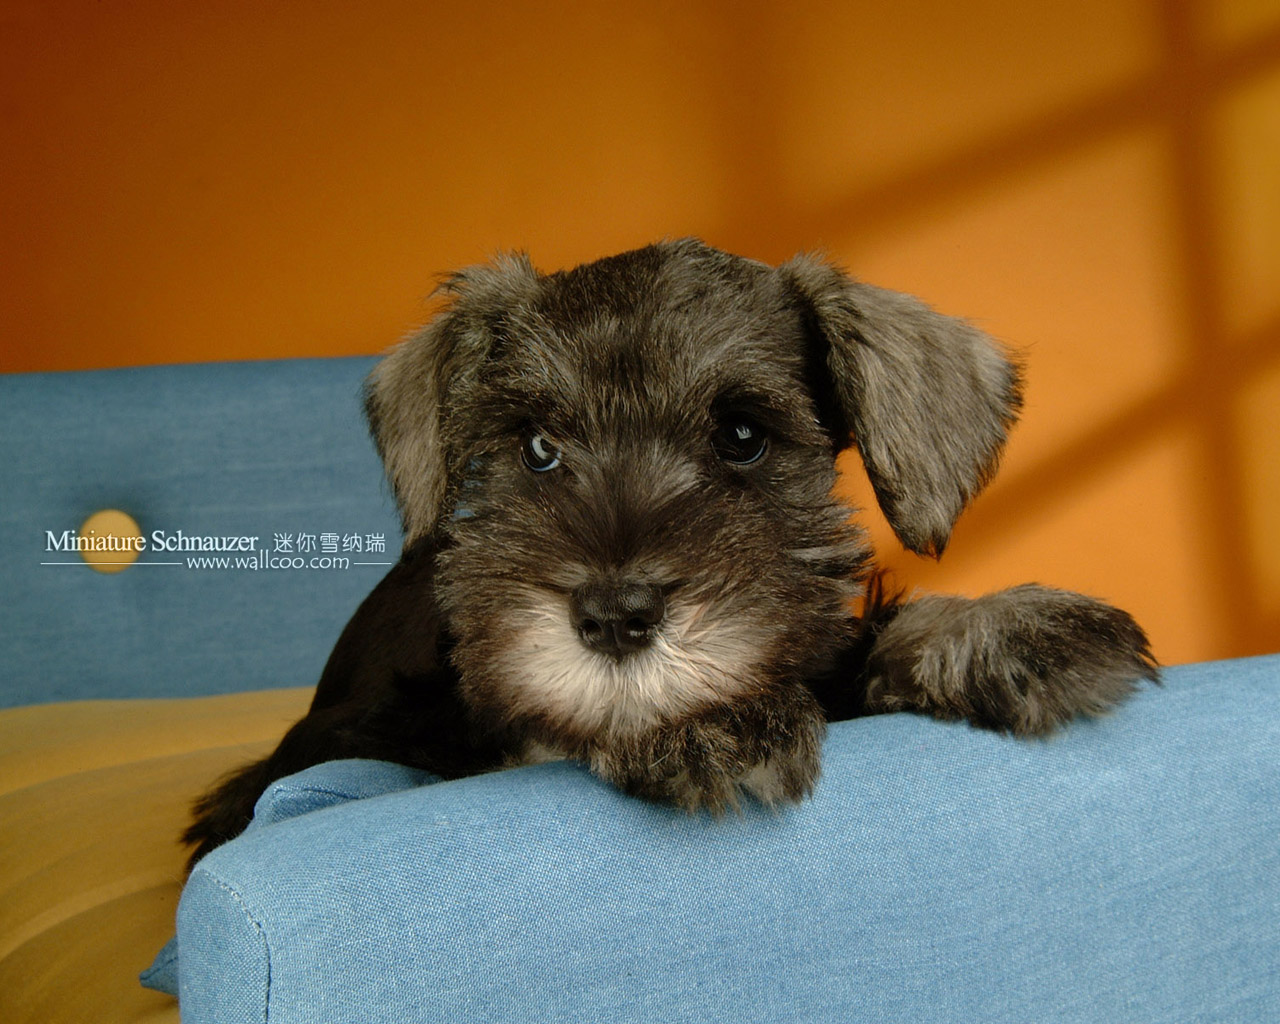 宠物狗狗迷你雪纳瑞 - pet dogs - miniature schnauzer puppy photo